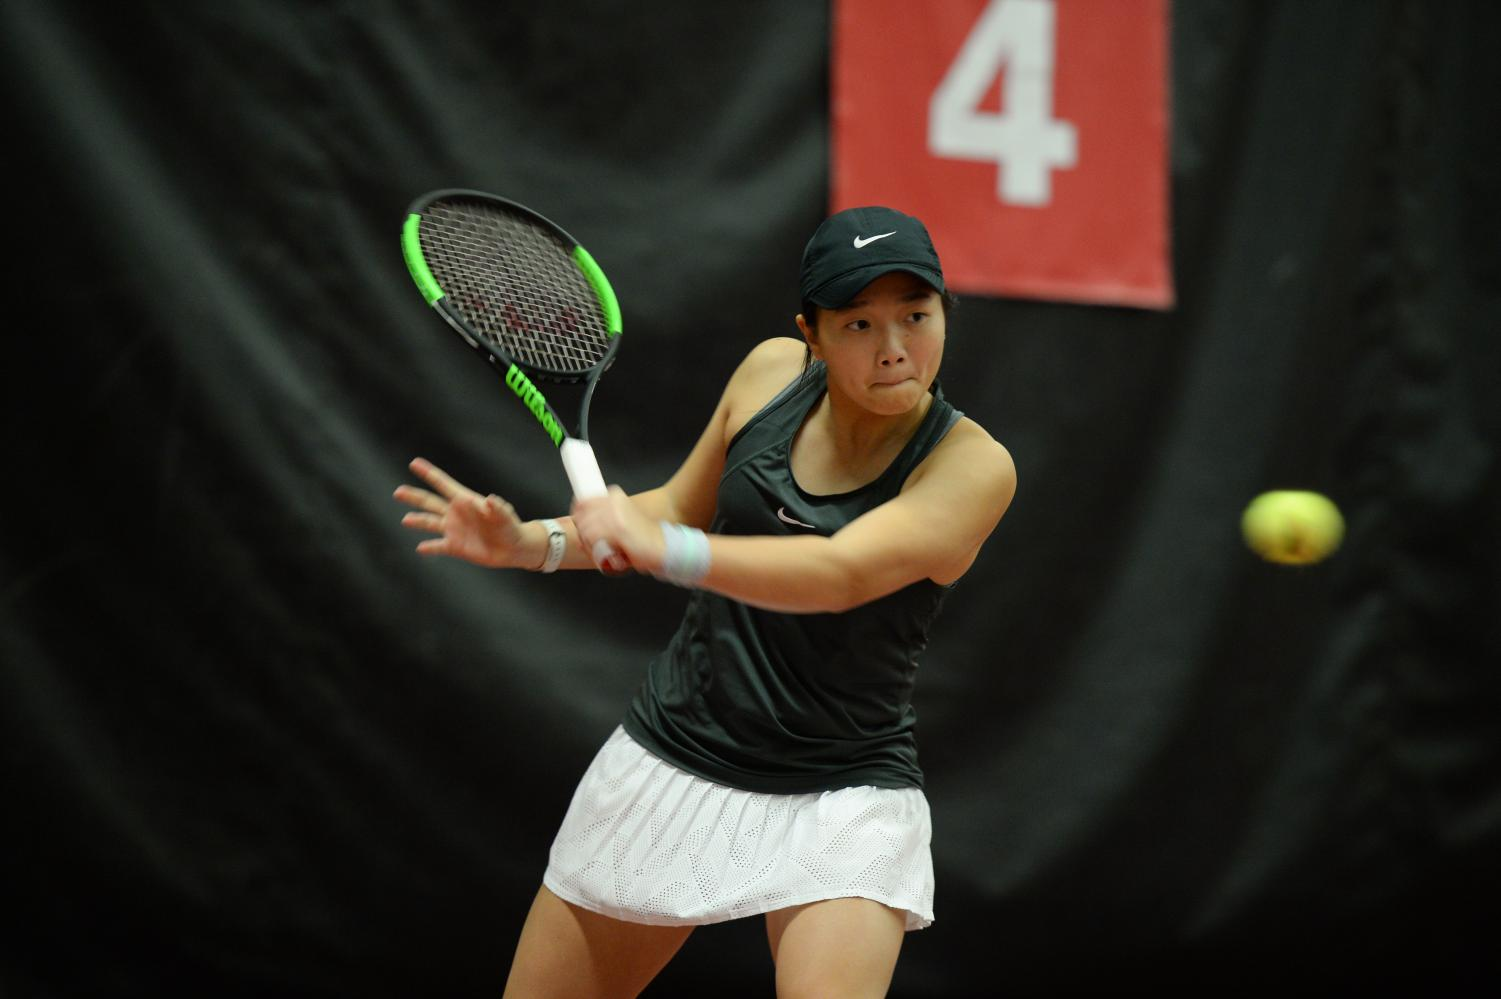 WSU Freshman Yang Lee returns a ball during singles play against Seattle U on Feb. 22 in Hollingbery Fieldhouse. Lee won her match in straight sets. Lee enjoys being a Cougar as well as spending time with her fun team.